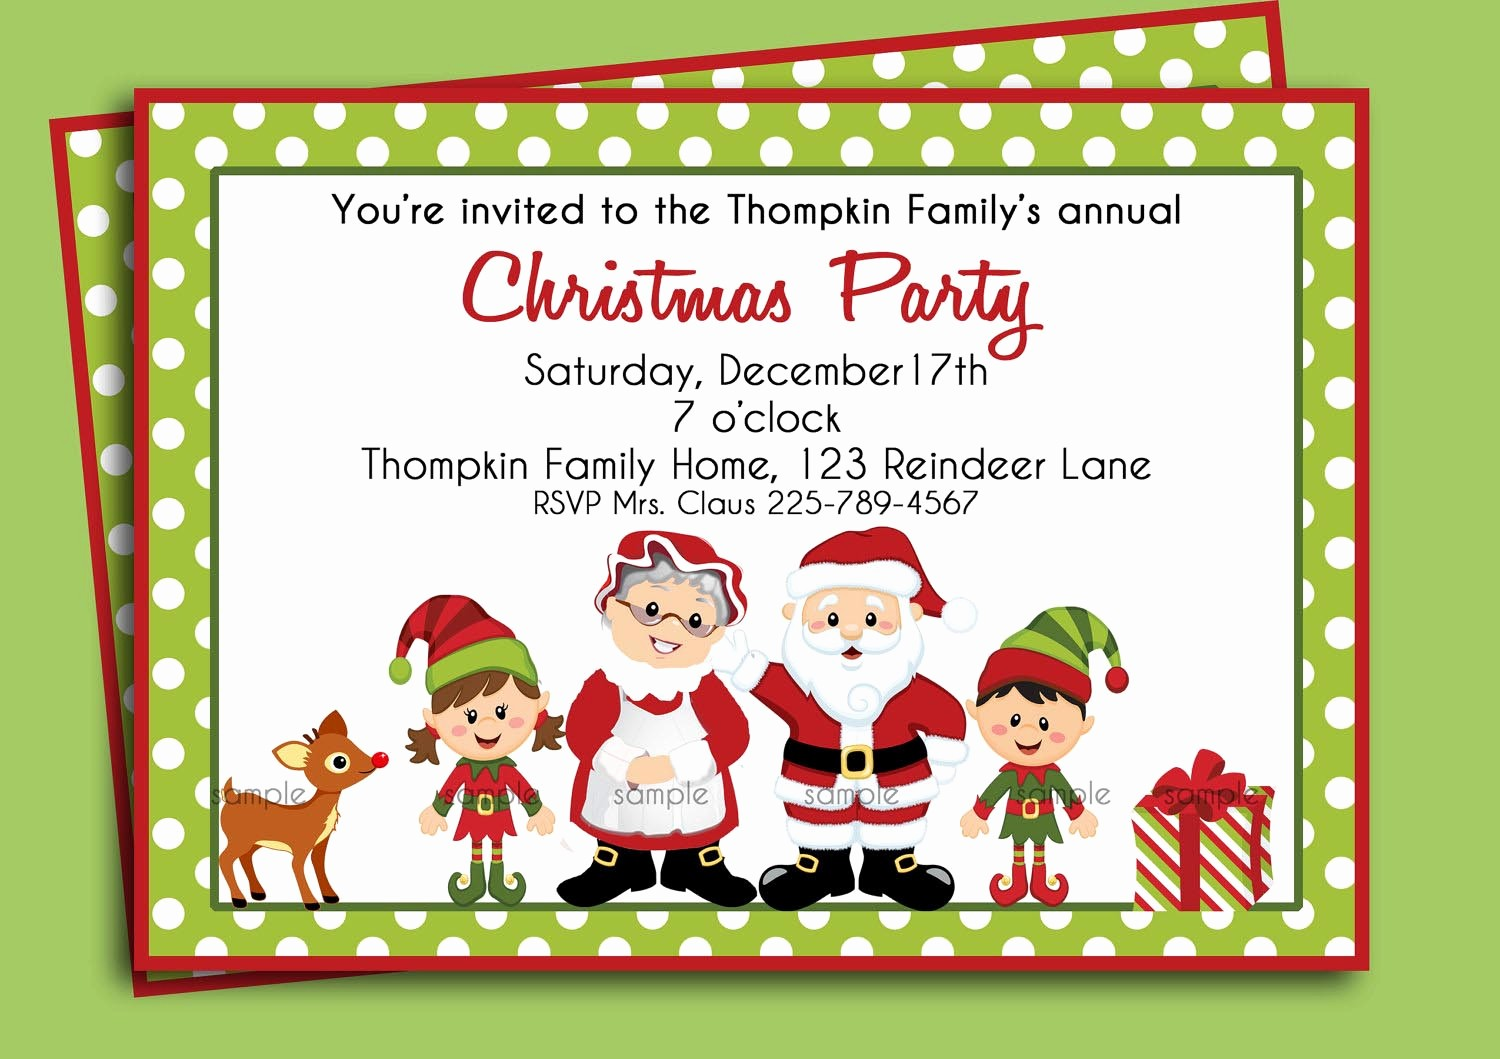 Christmas Party Invitations Free Template Beautiful Christmas Birthday Party Invitations